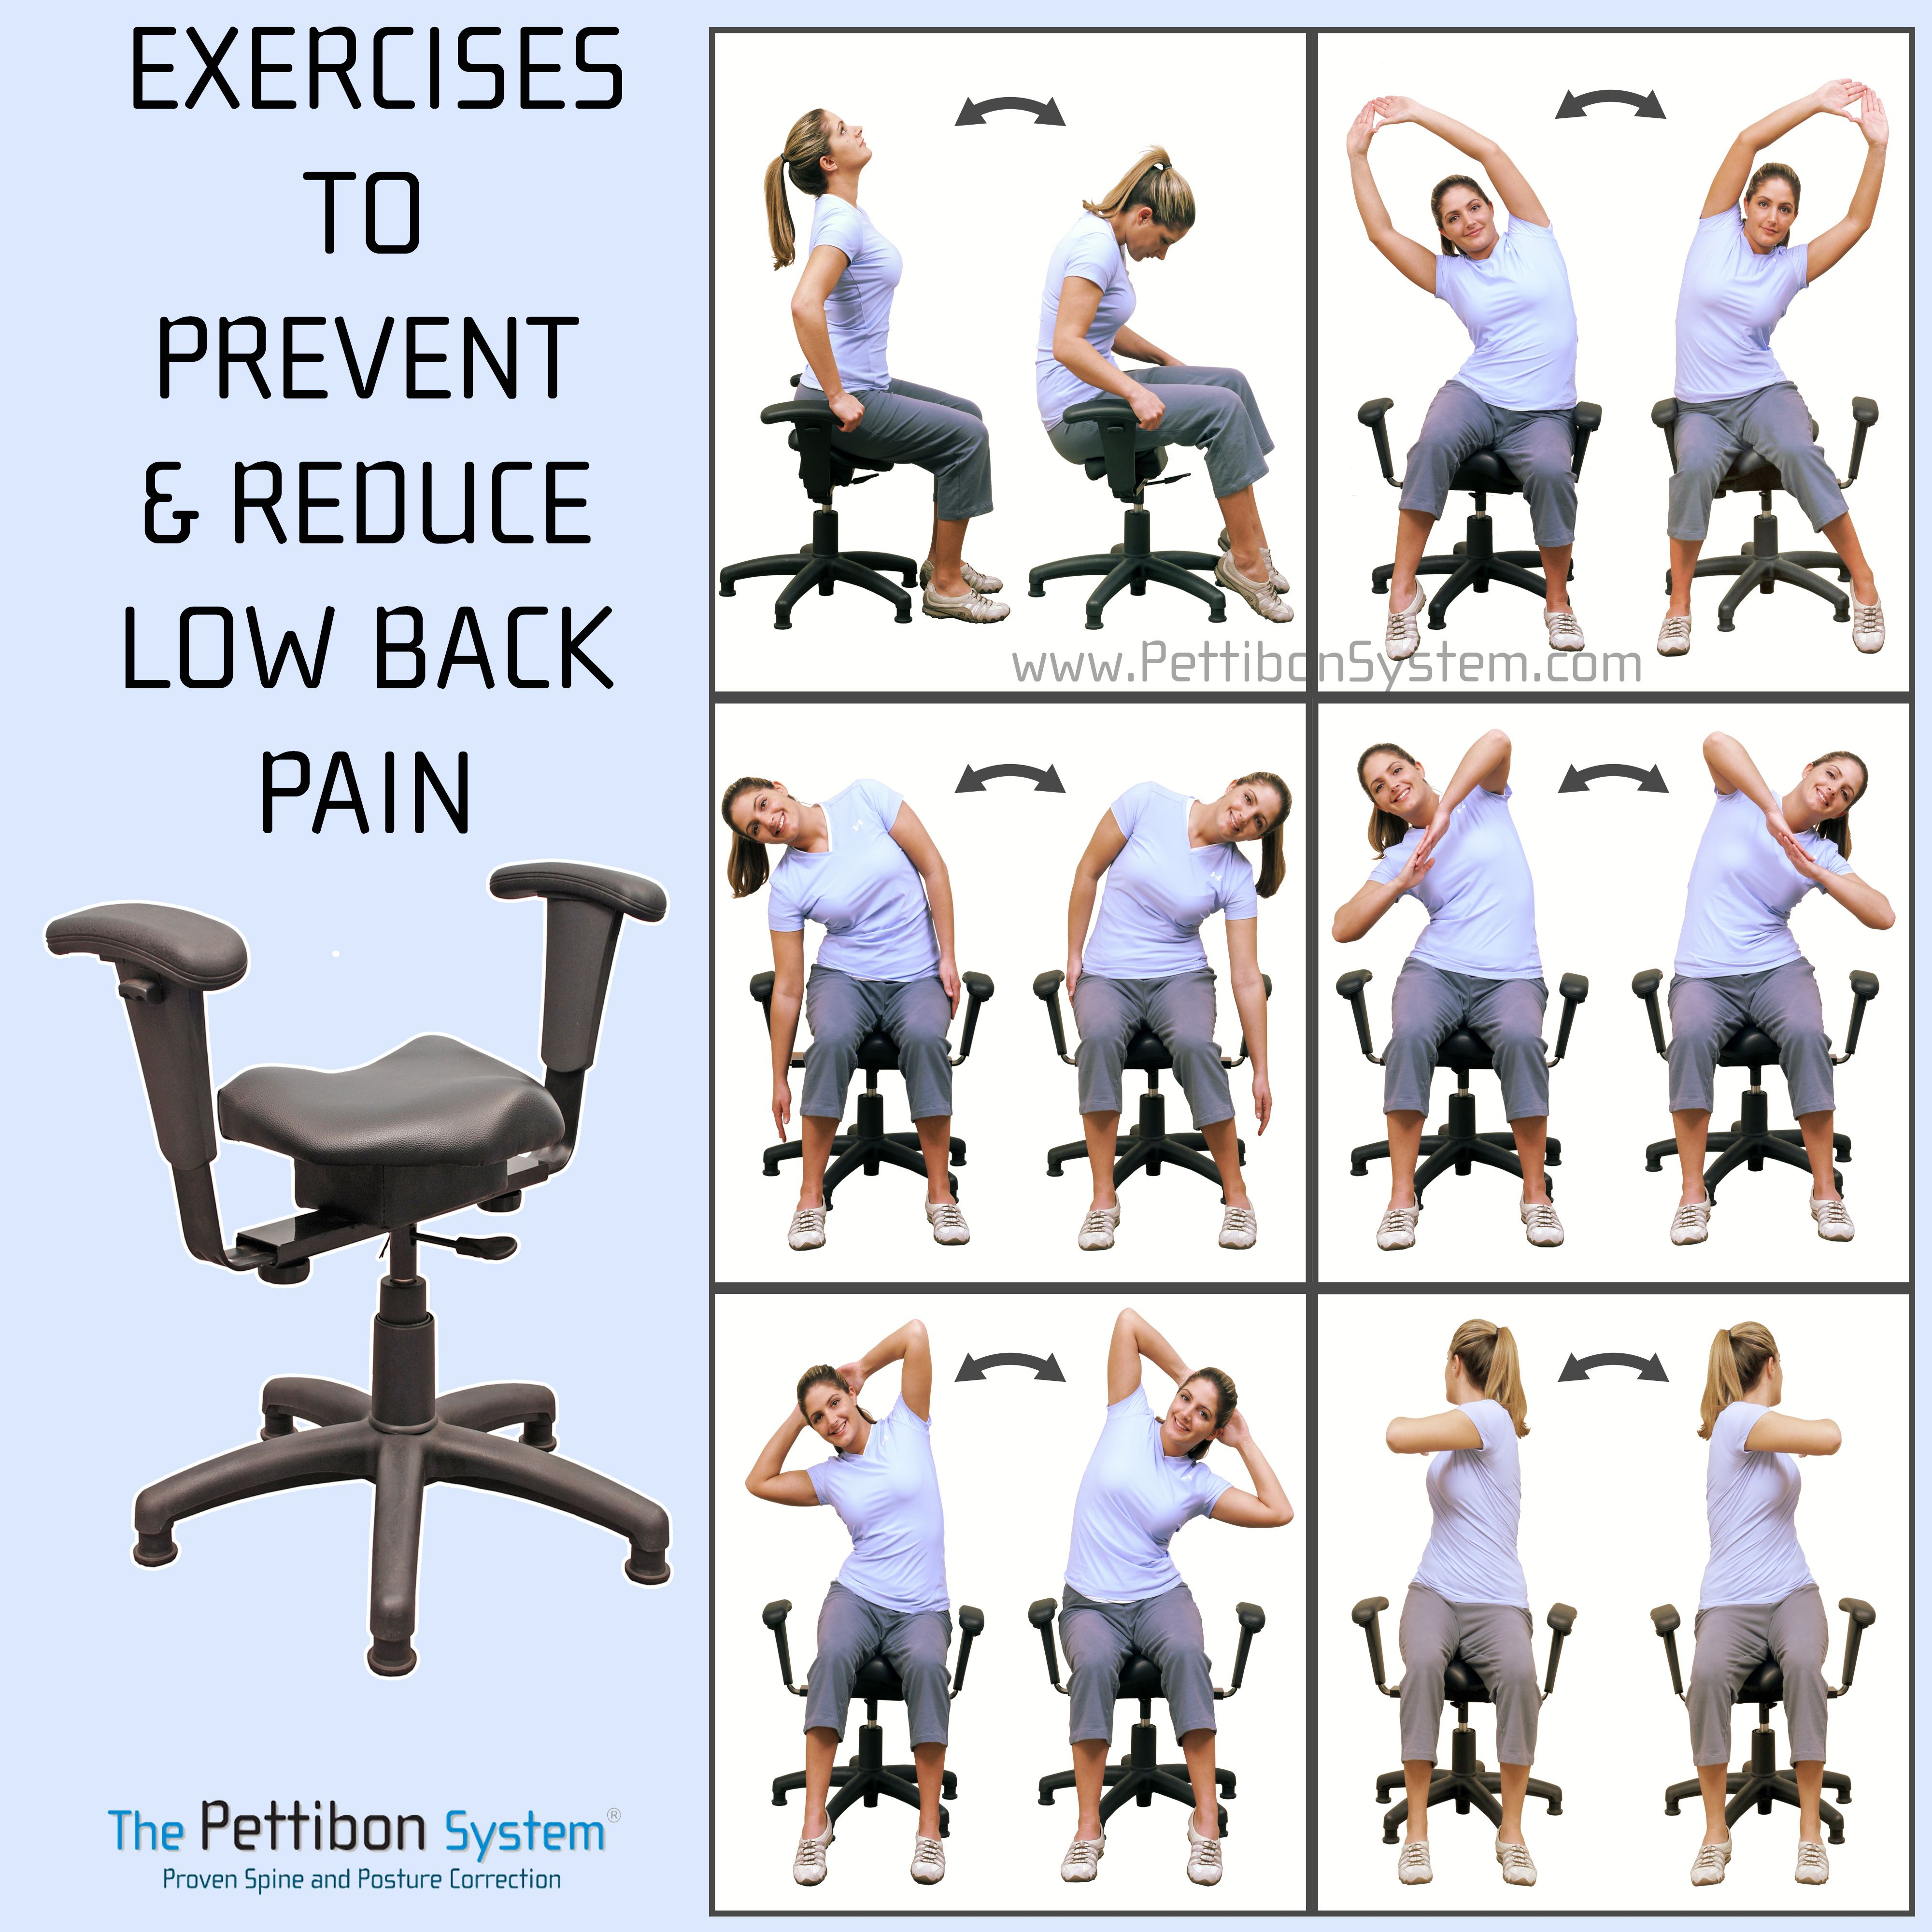 portable wobble chair exercises burlap sashes amazing stretches for back pain relief the